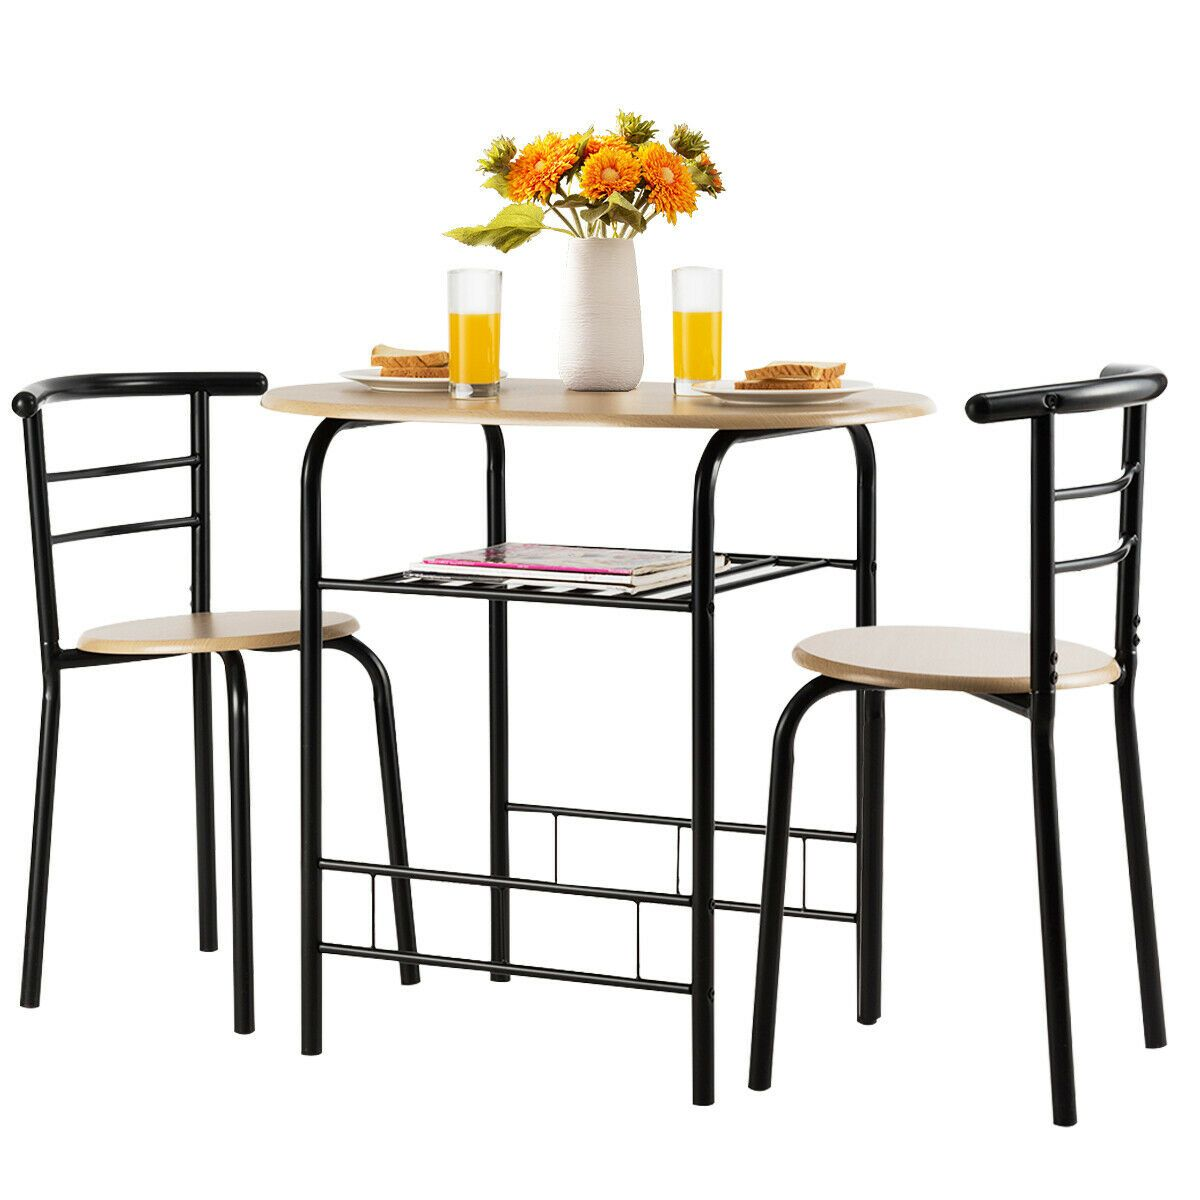 3 Pcs Home Kitchen Bistro Pub Dining Table 2 Chairs Set Dining